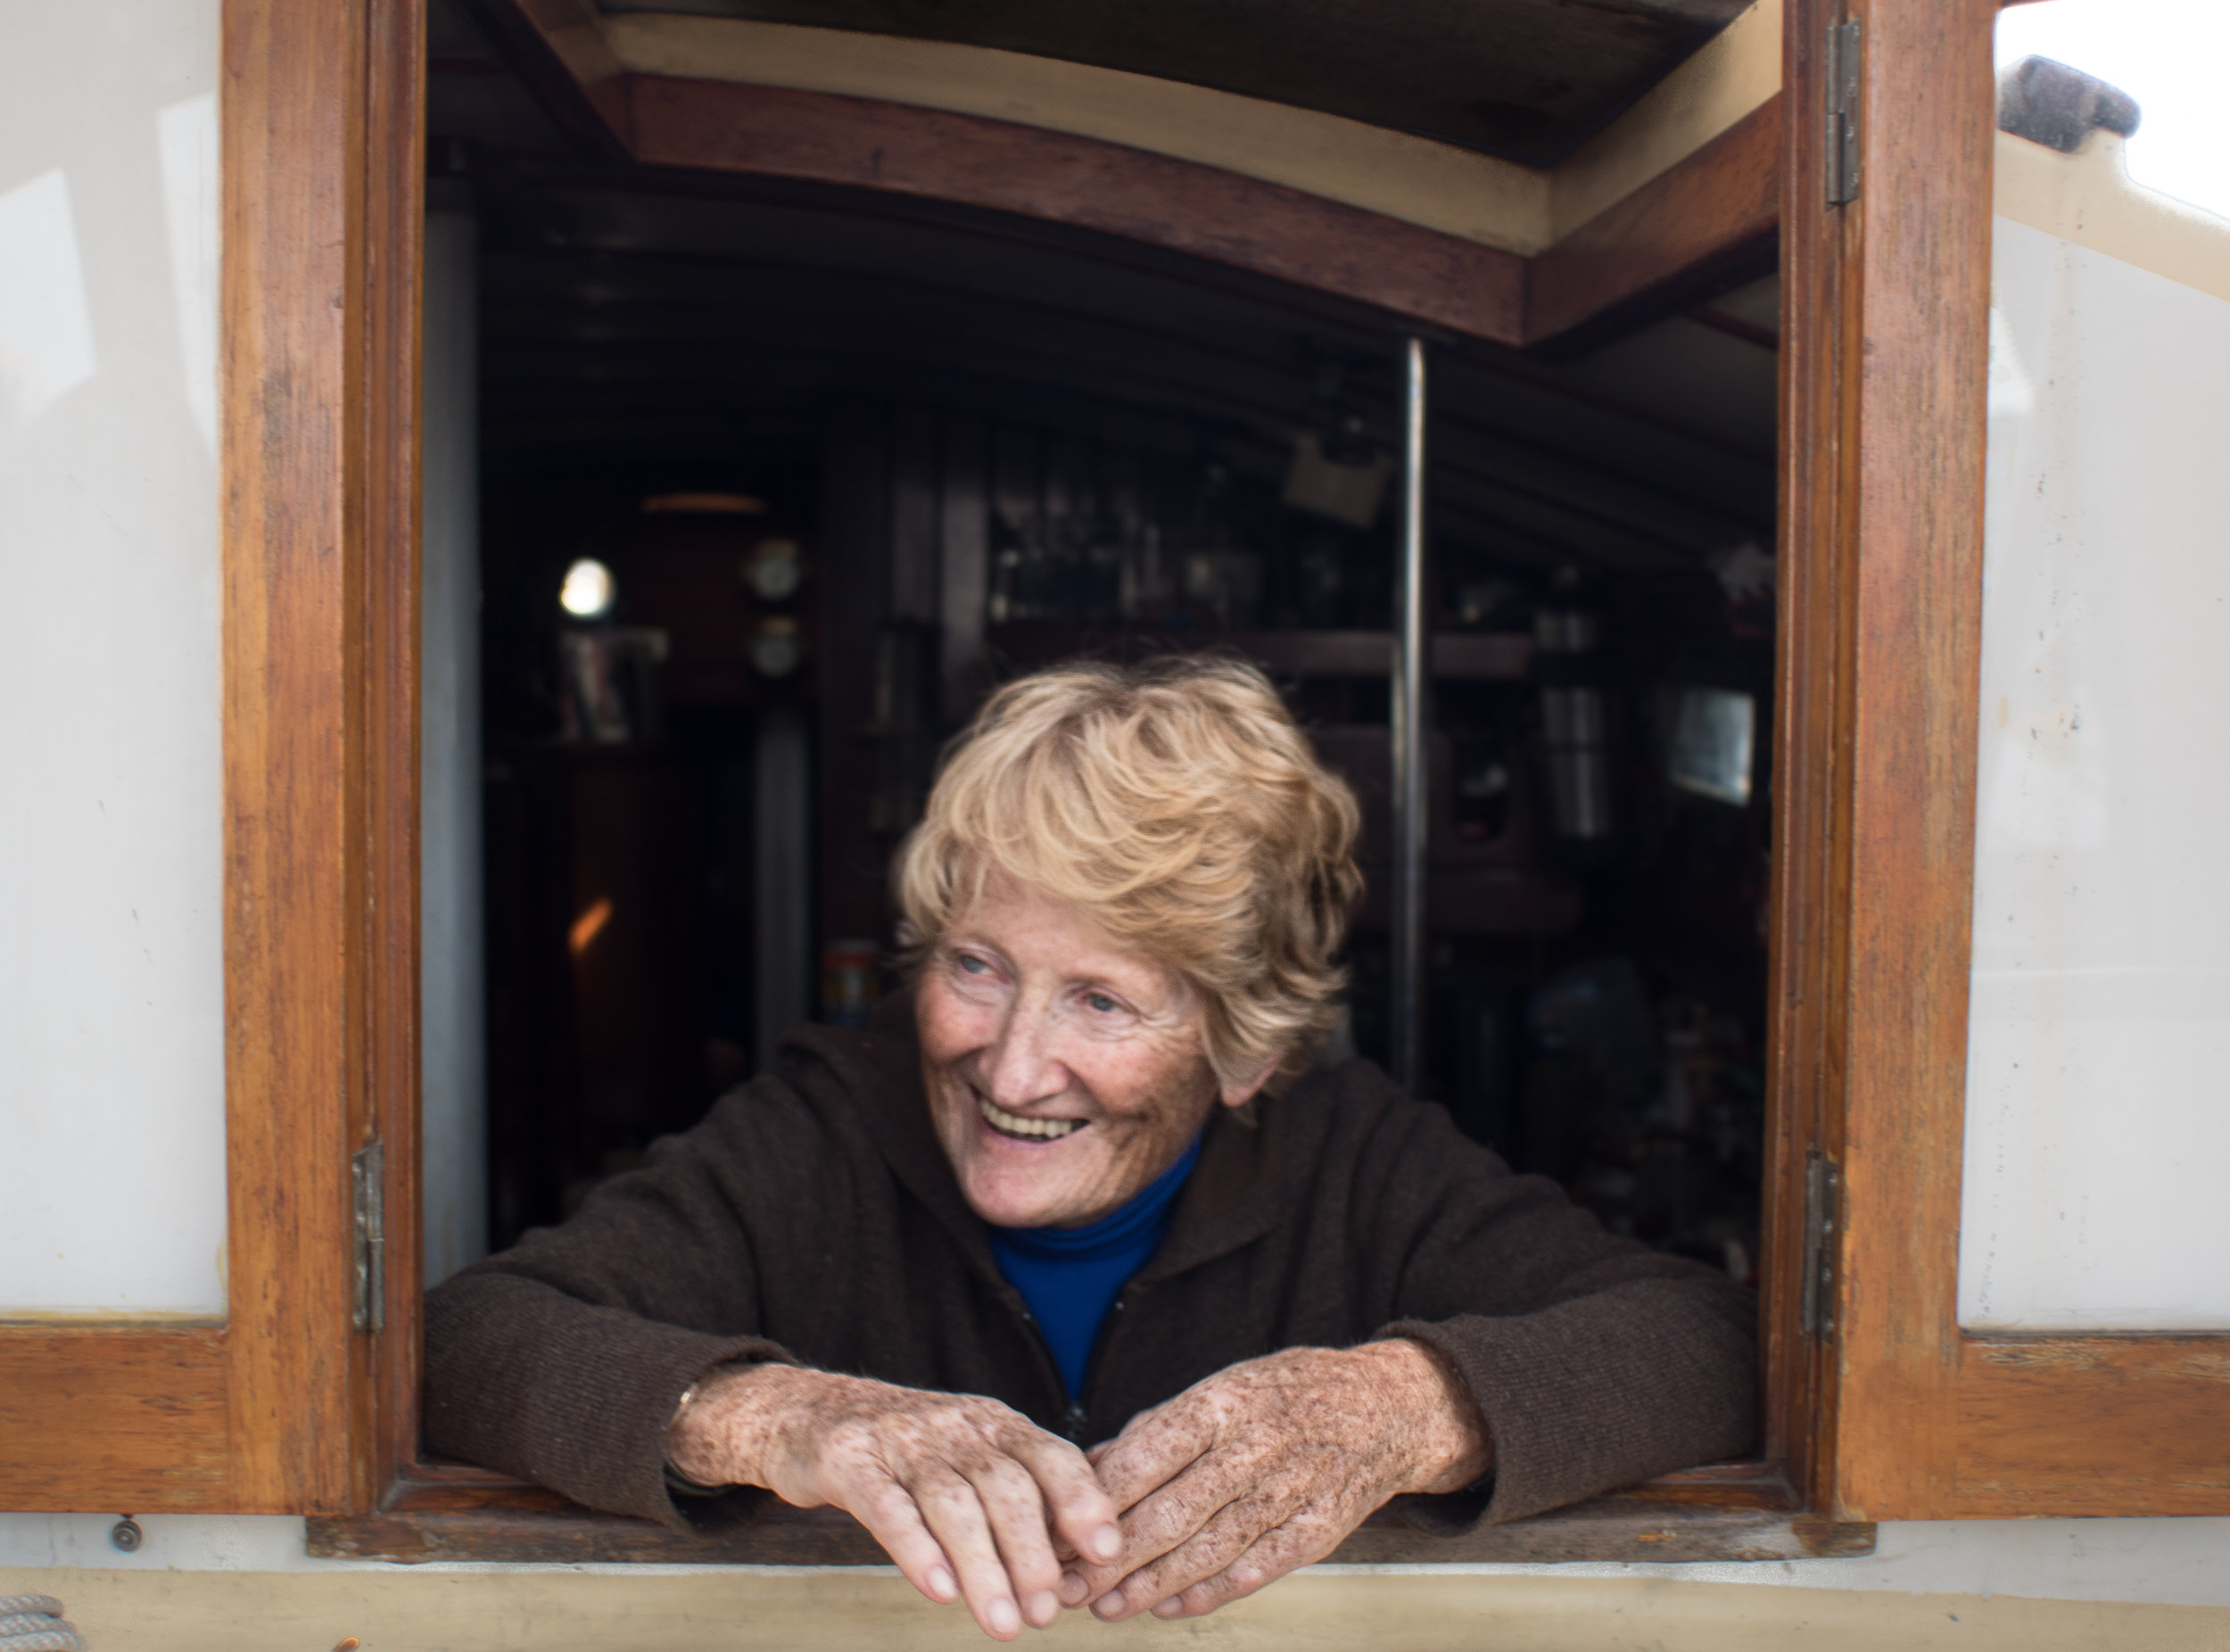 Jane has lived in her 37 foot boat for the better part of the last 30 years.